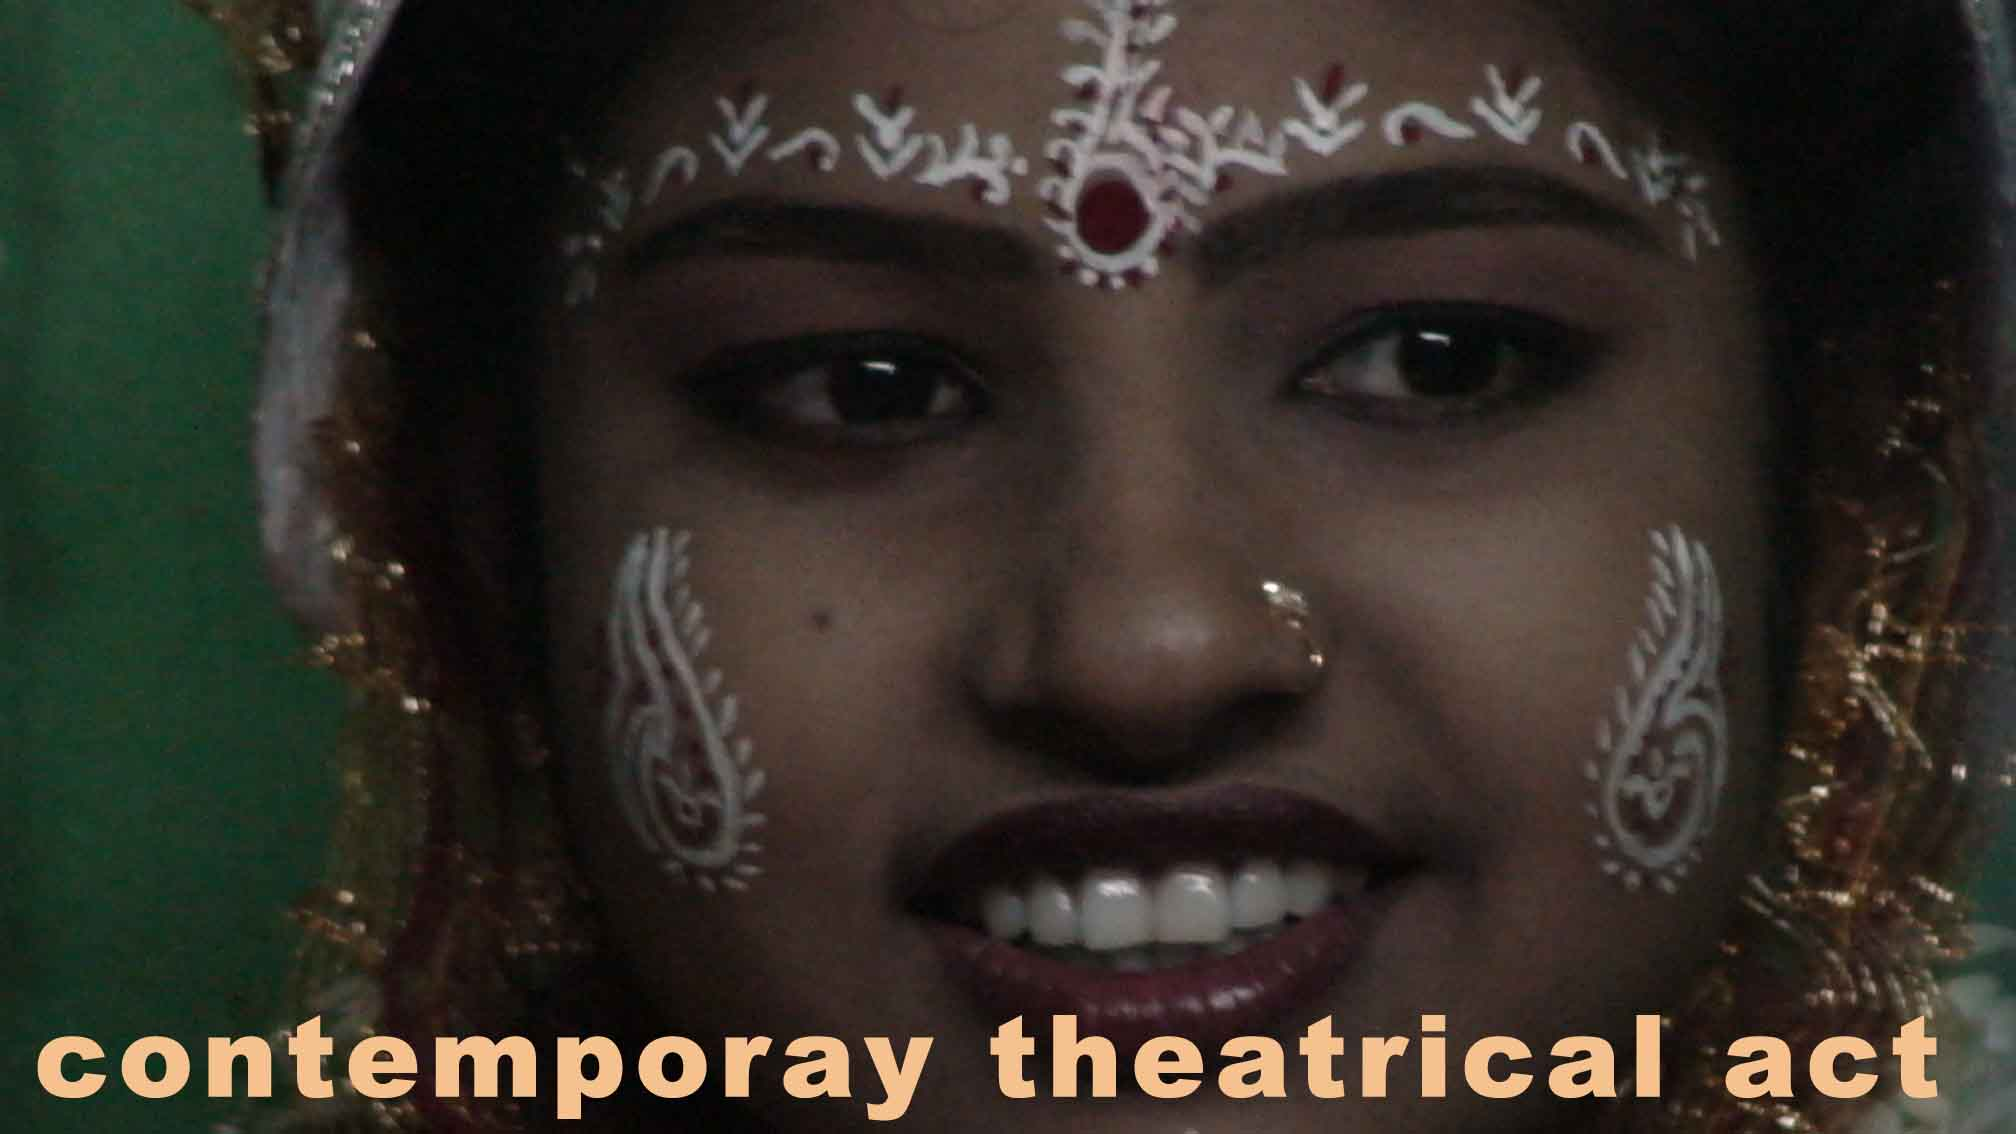 The contemporary theatrical act: presentation and symbols